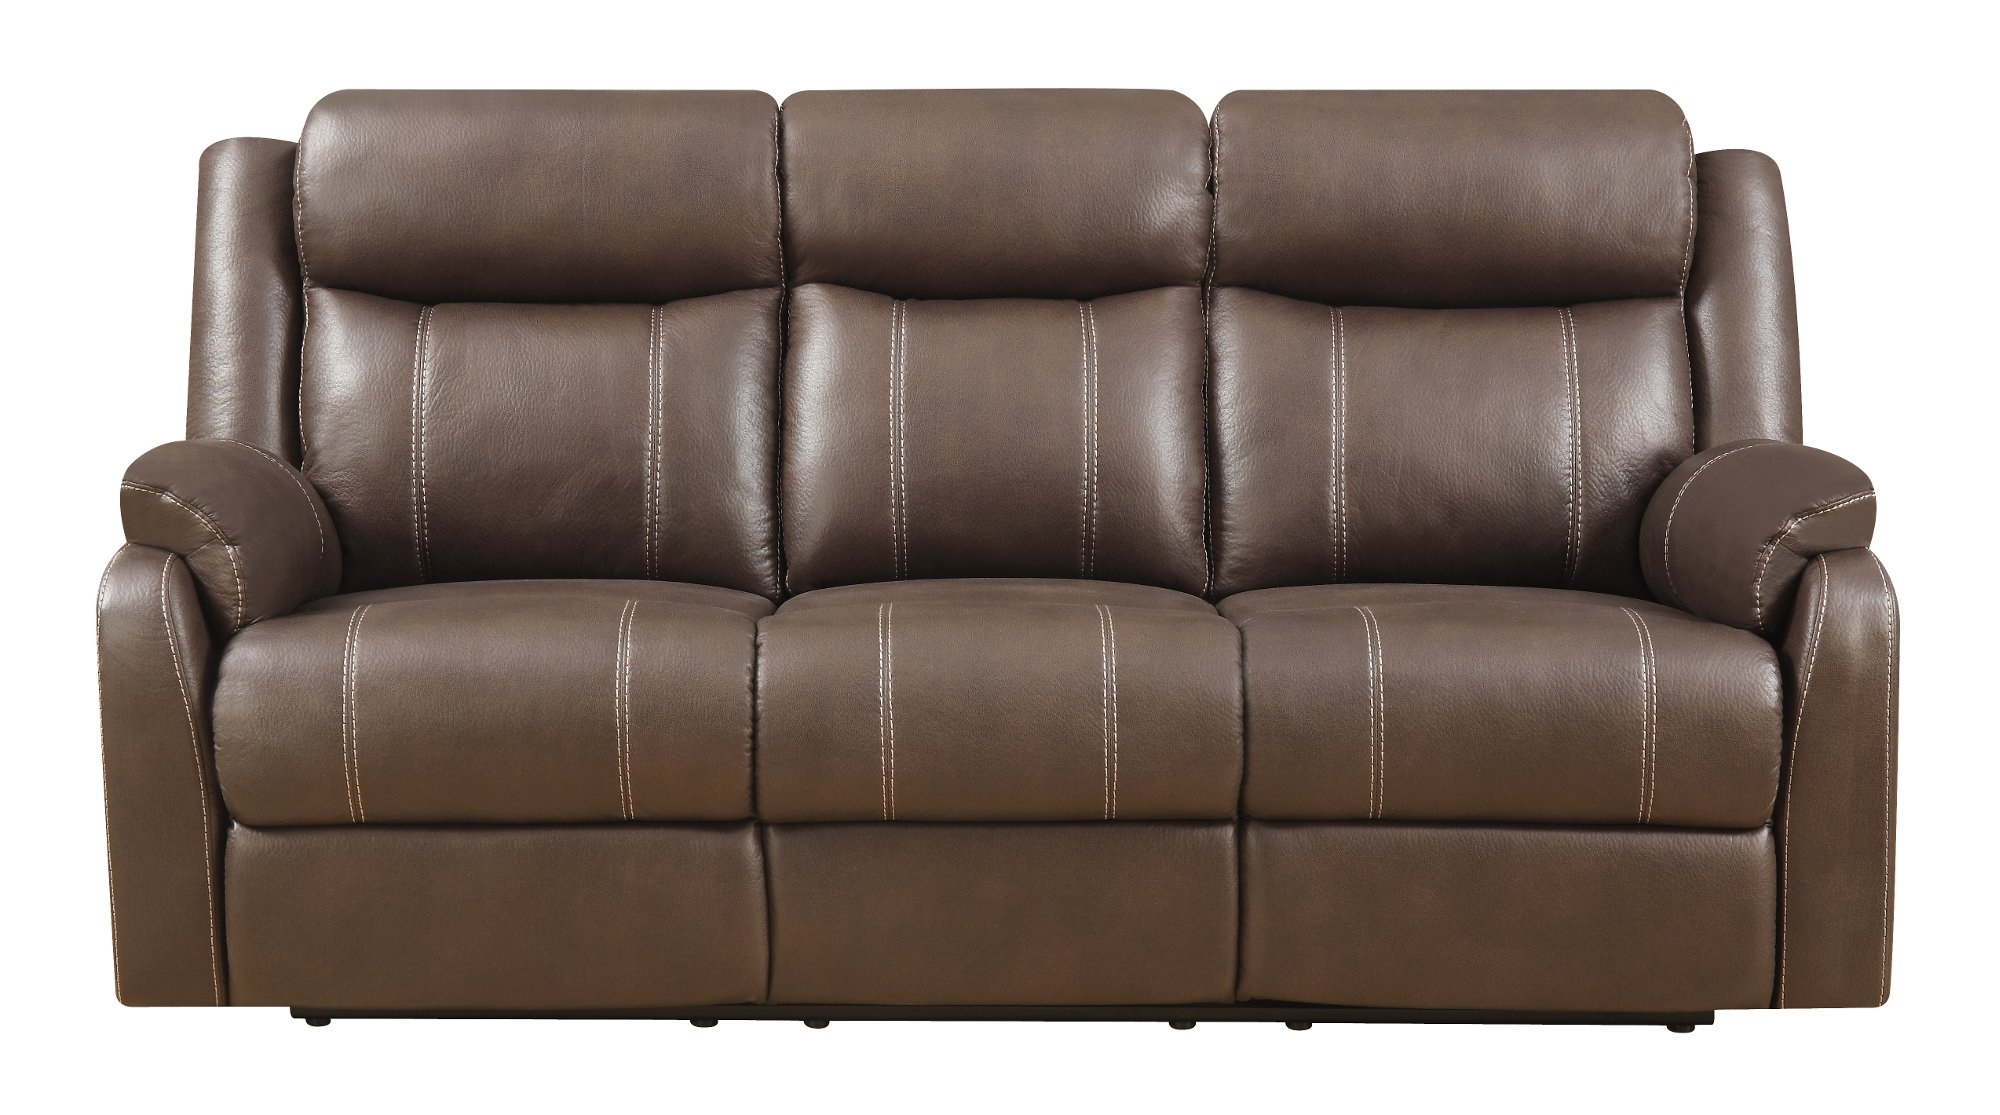 Valor Chocolate Brown Reclining Sofa Recling Loveseat Domino Rc Willey Furniture Store